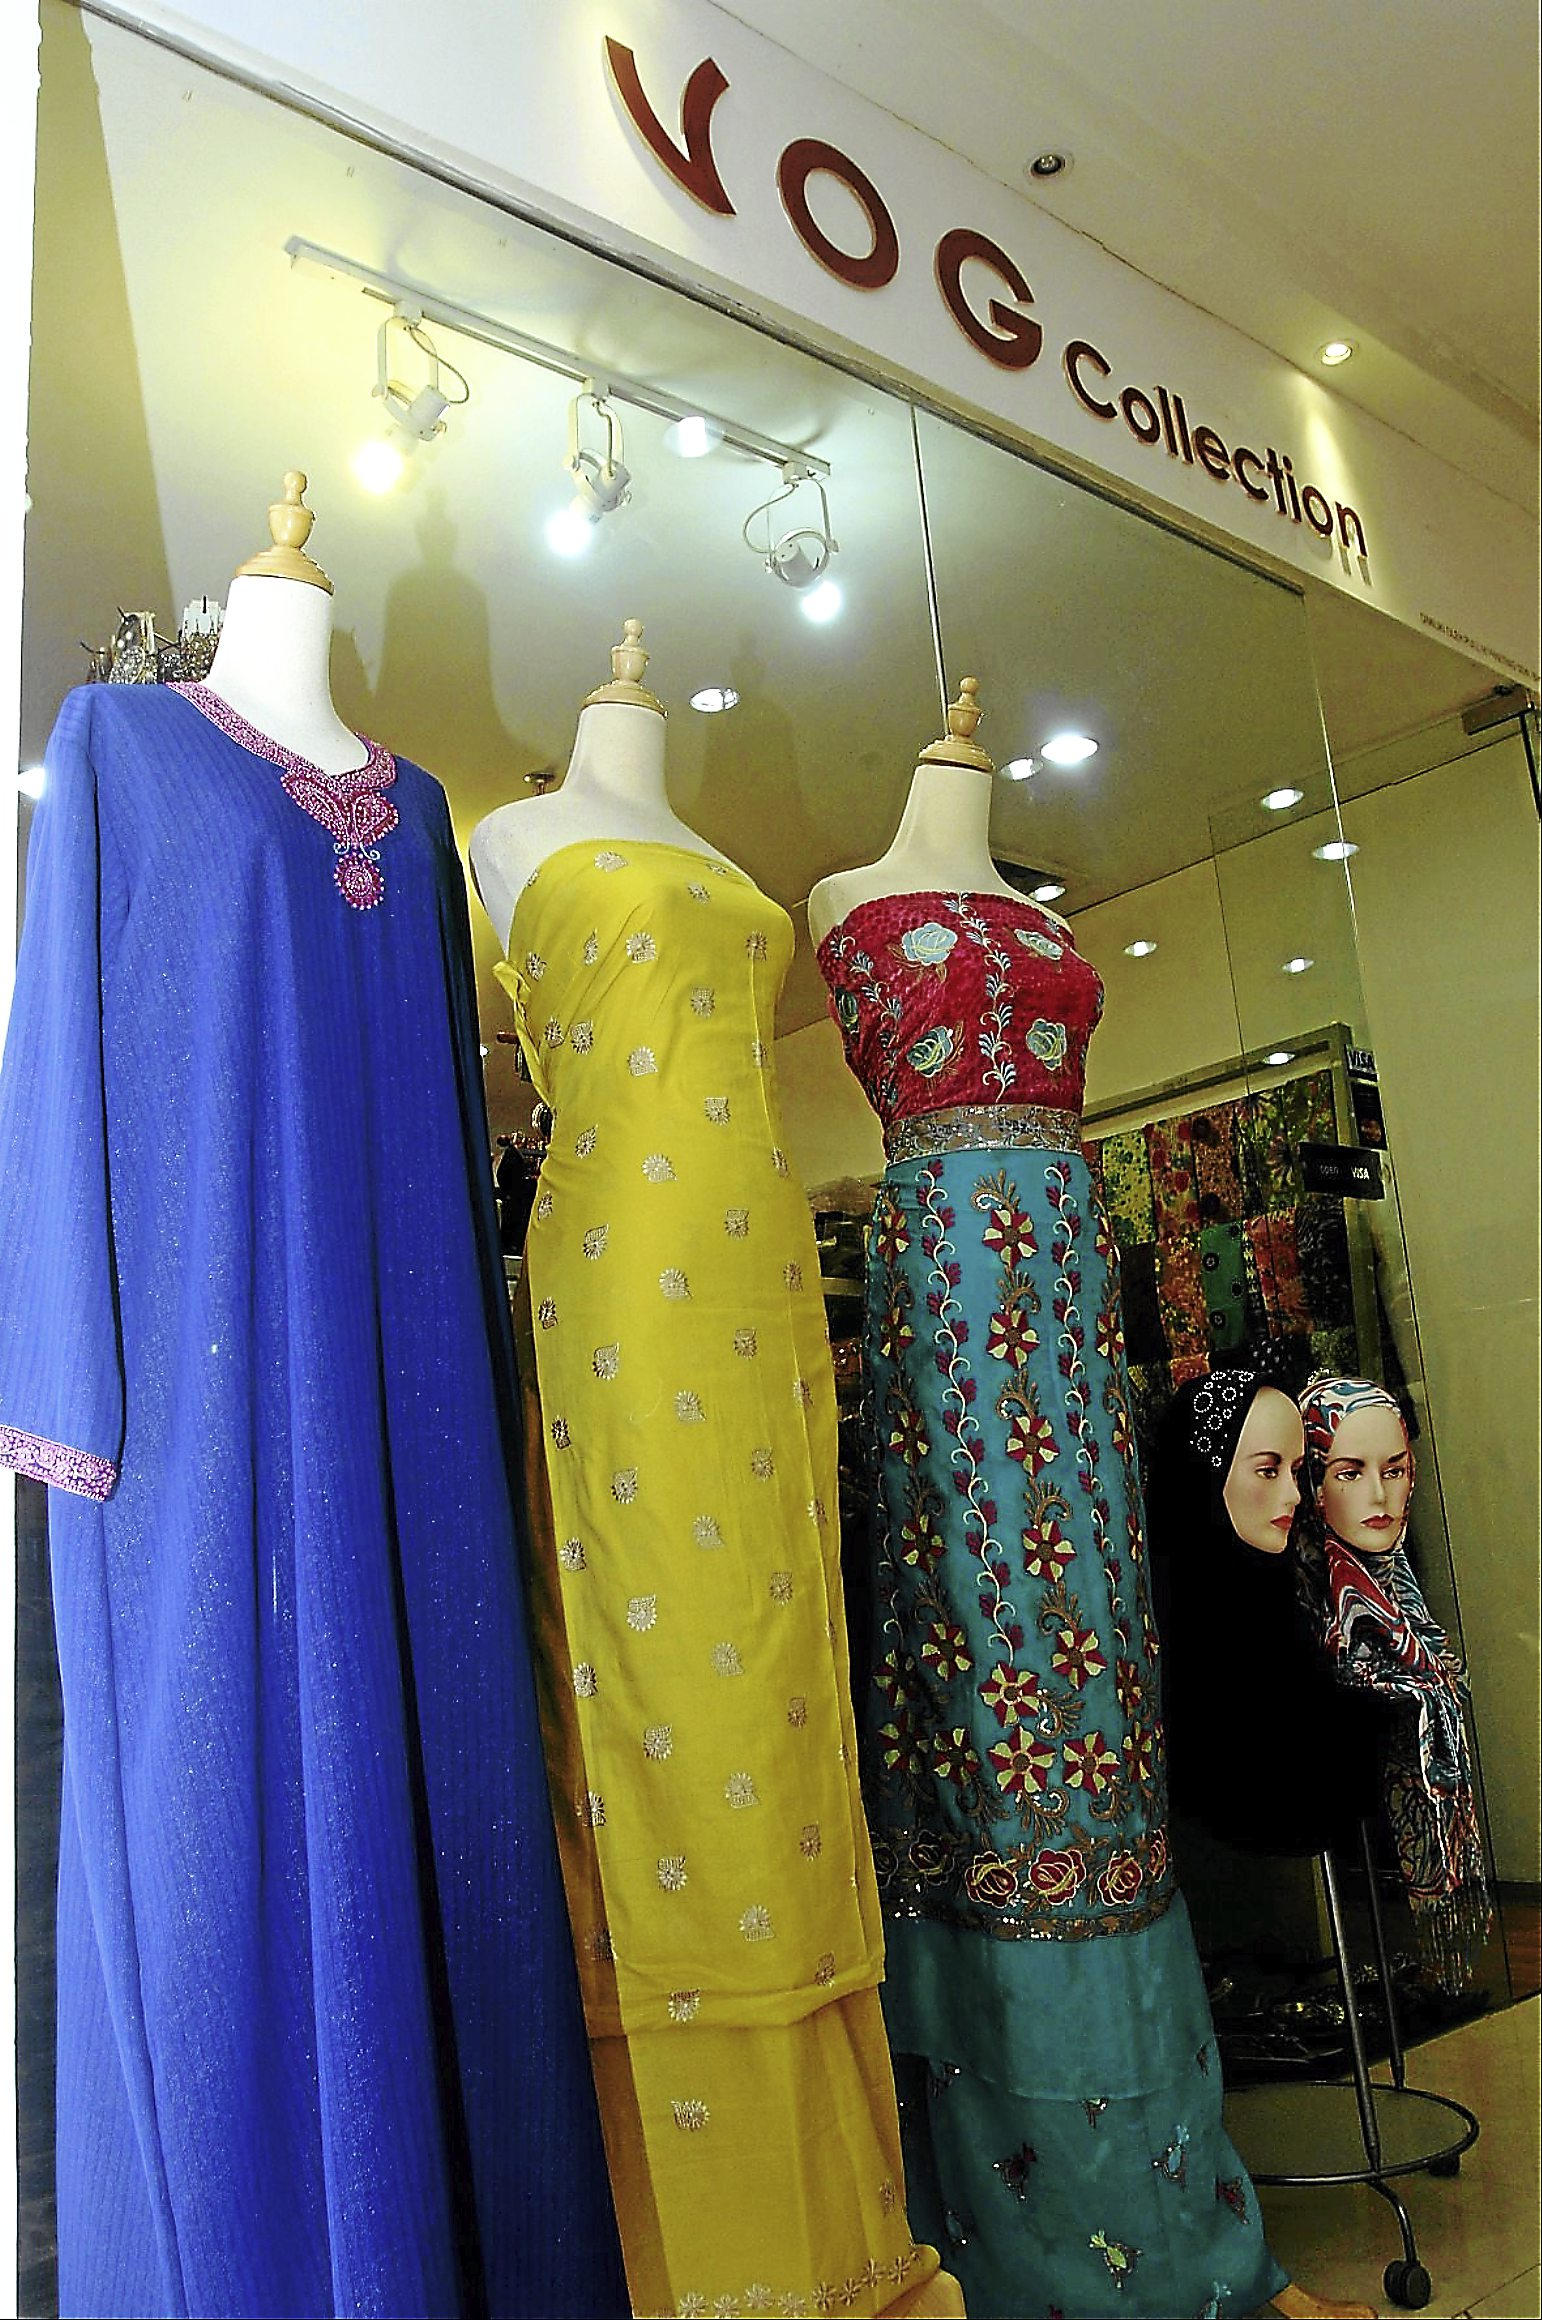 Karina - Metrobiz  interview with Fasia, owner of a female Muslim apparel/cloth retail business (for Hari Raya feature).